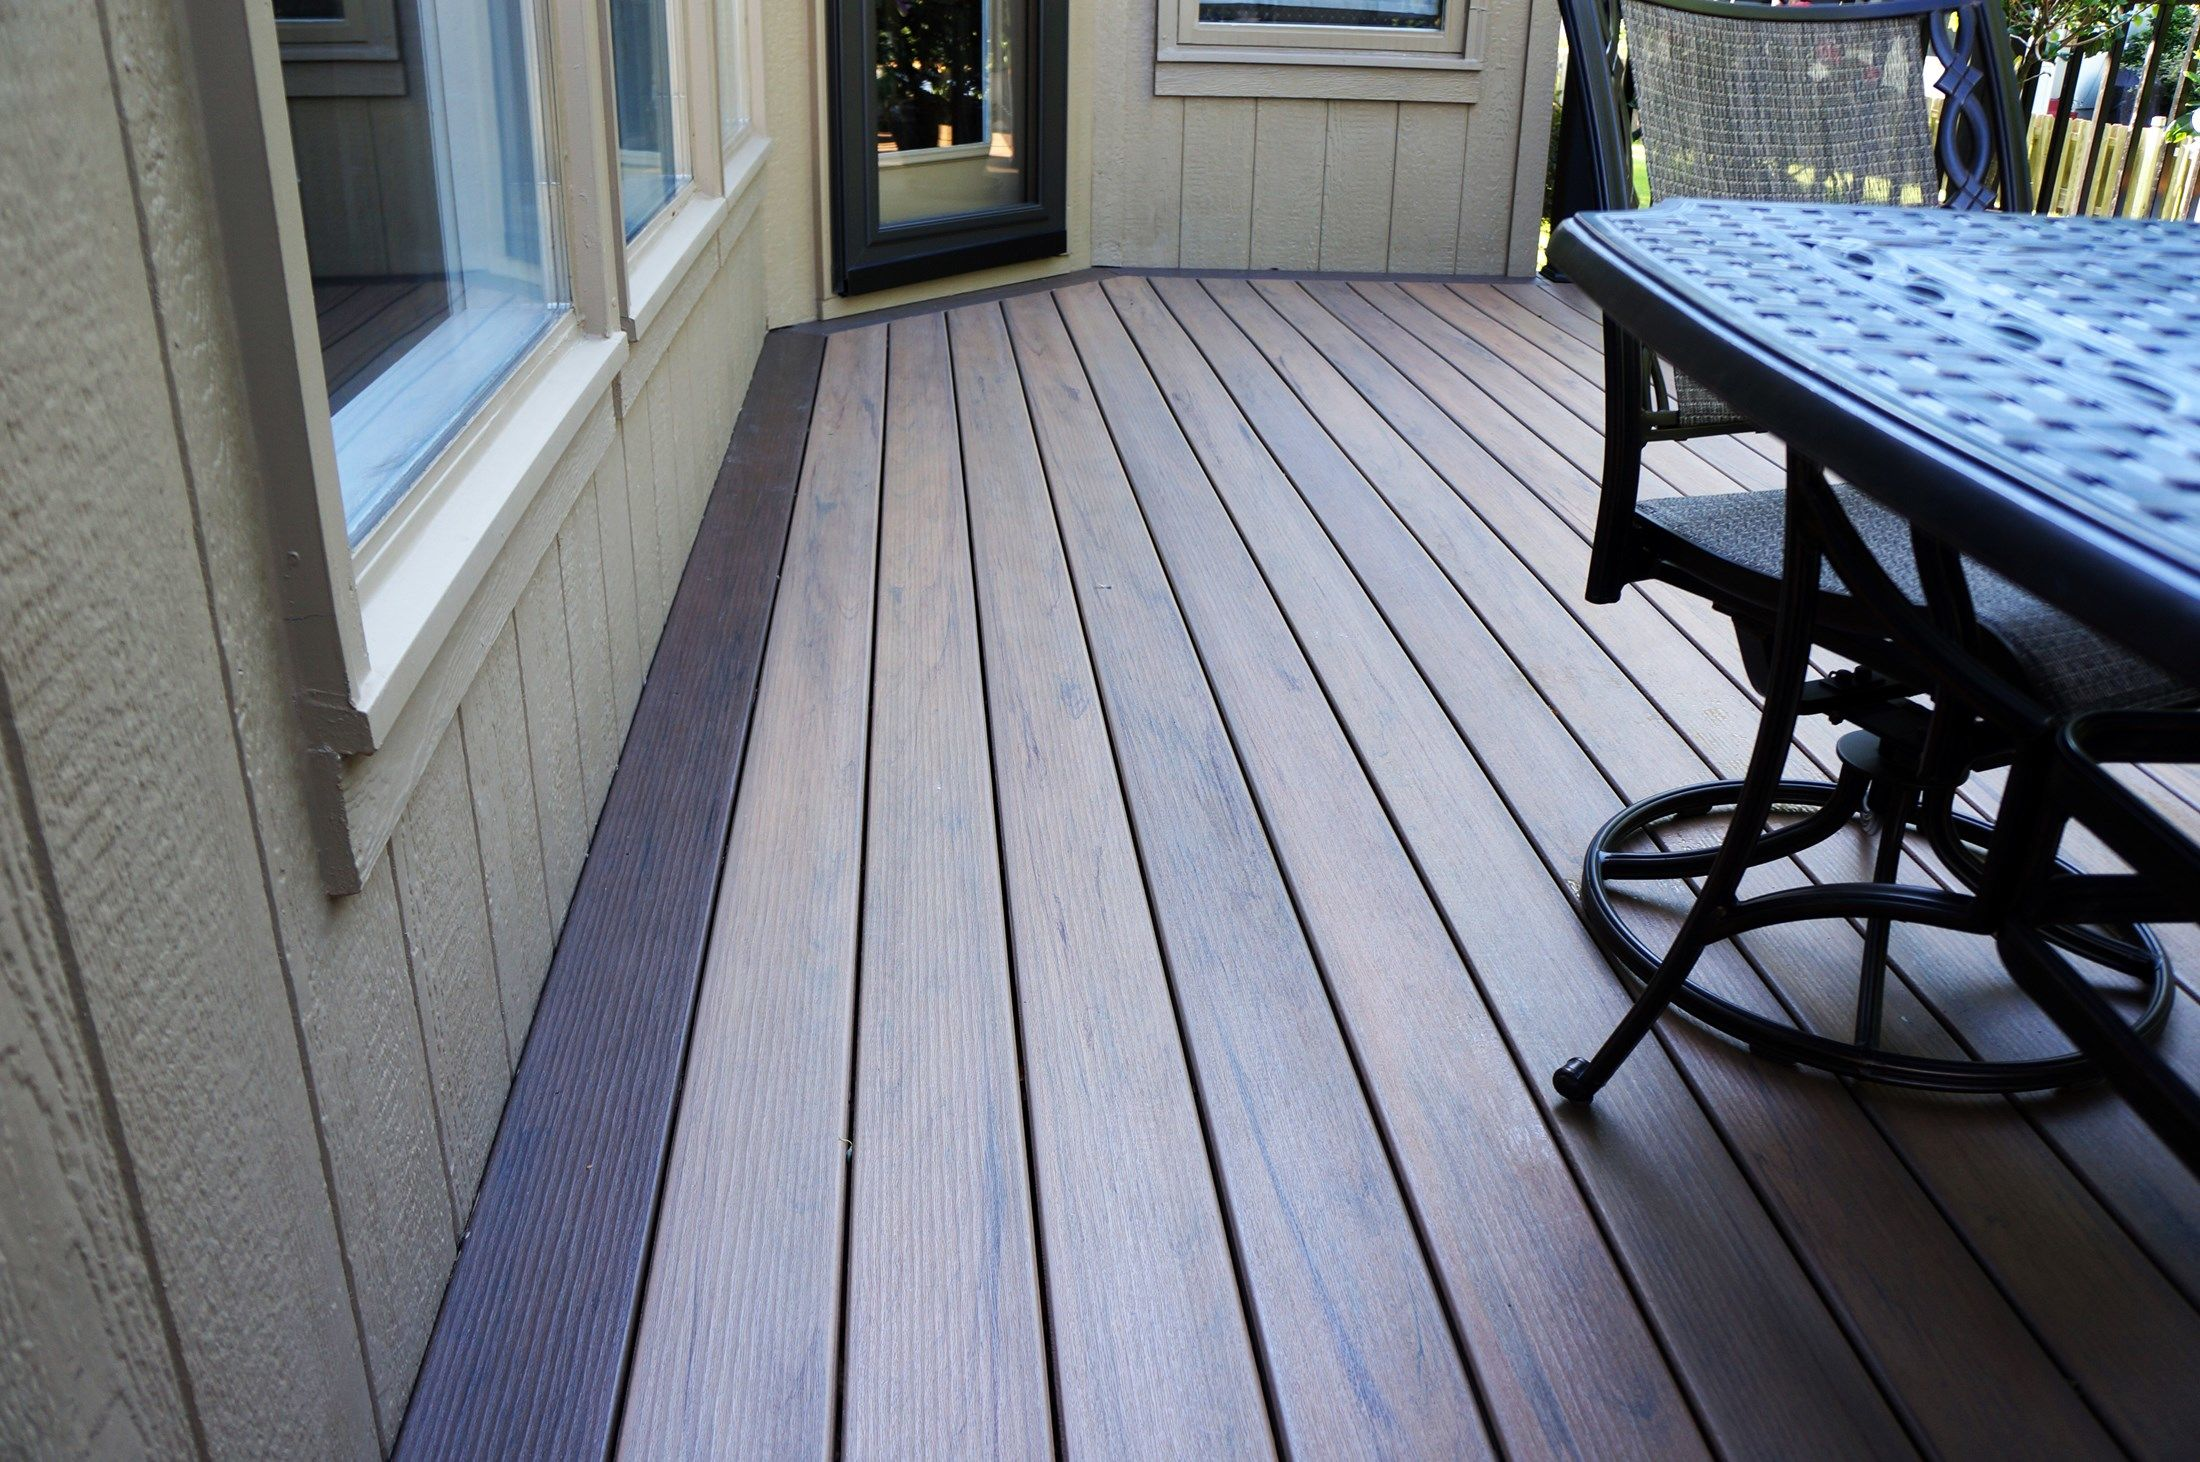 Timbertech Deck 4 Picture 5137 Decks Com